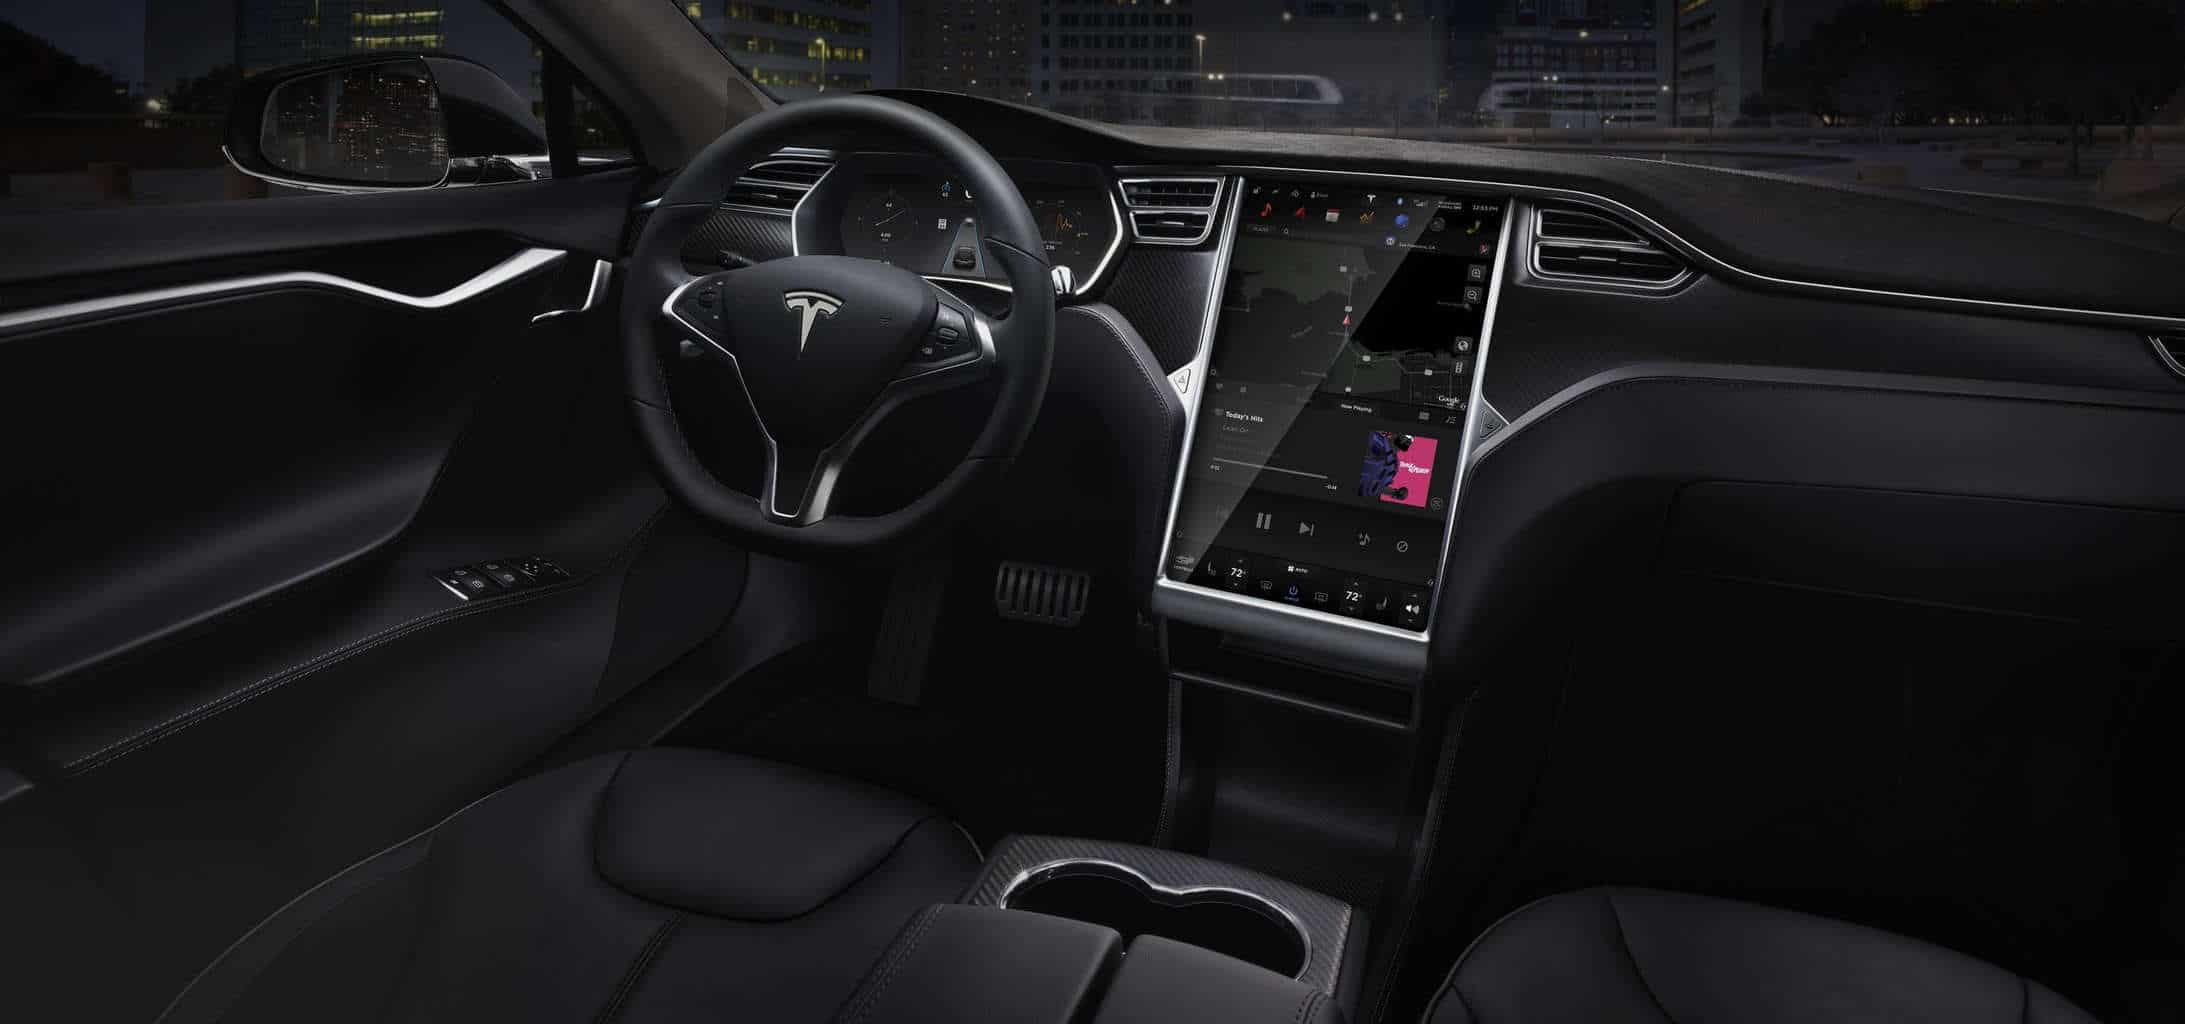 Tesla Inc stock moves on not so secret weapon